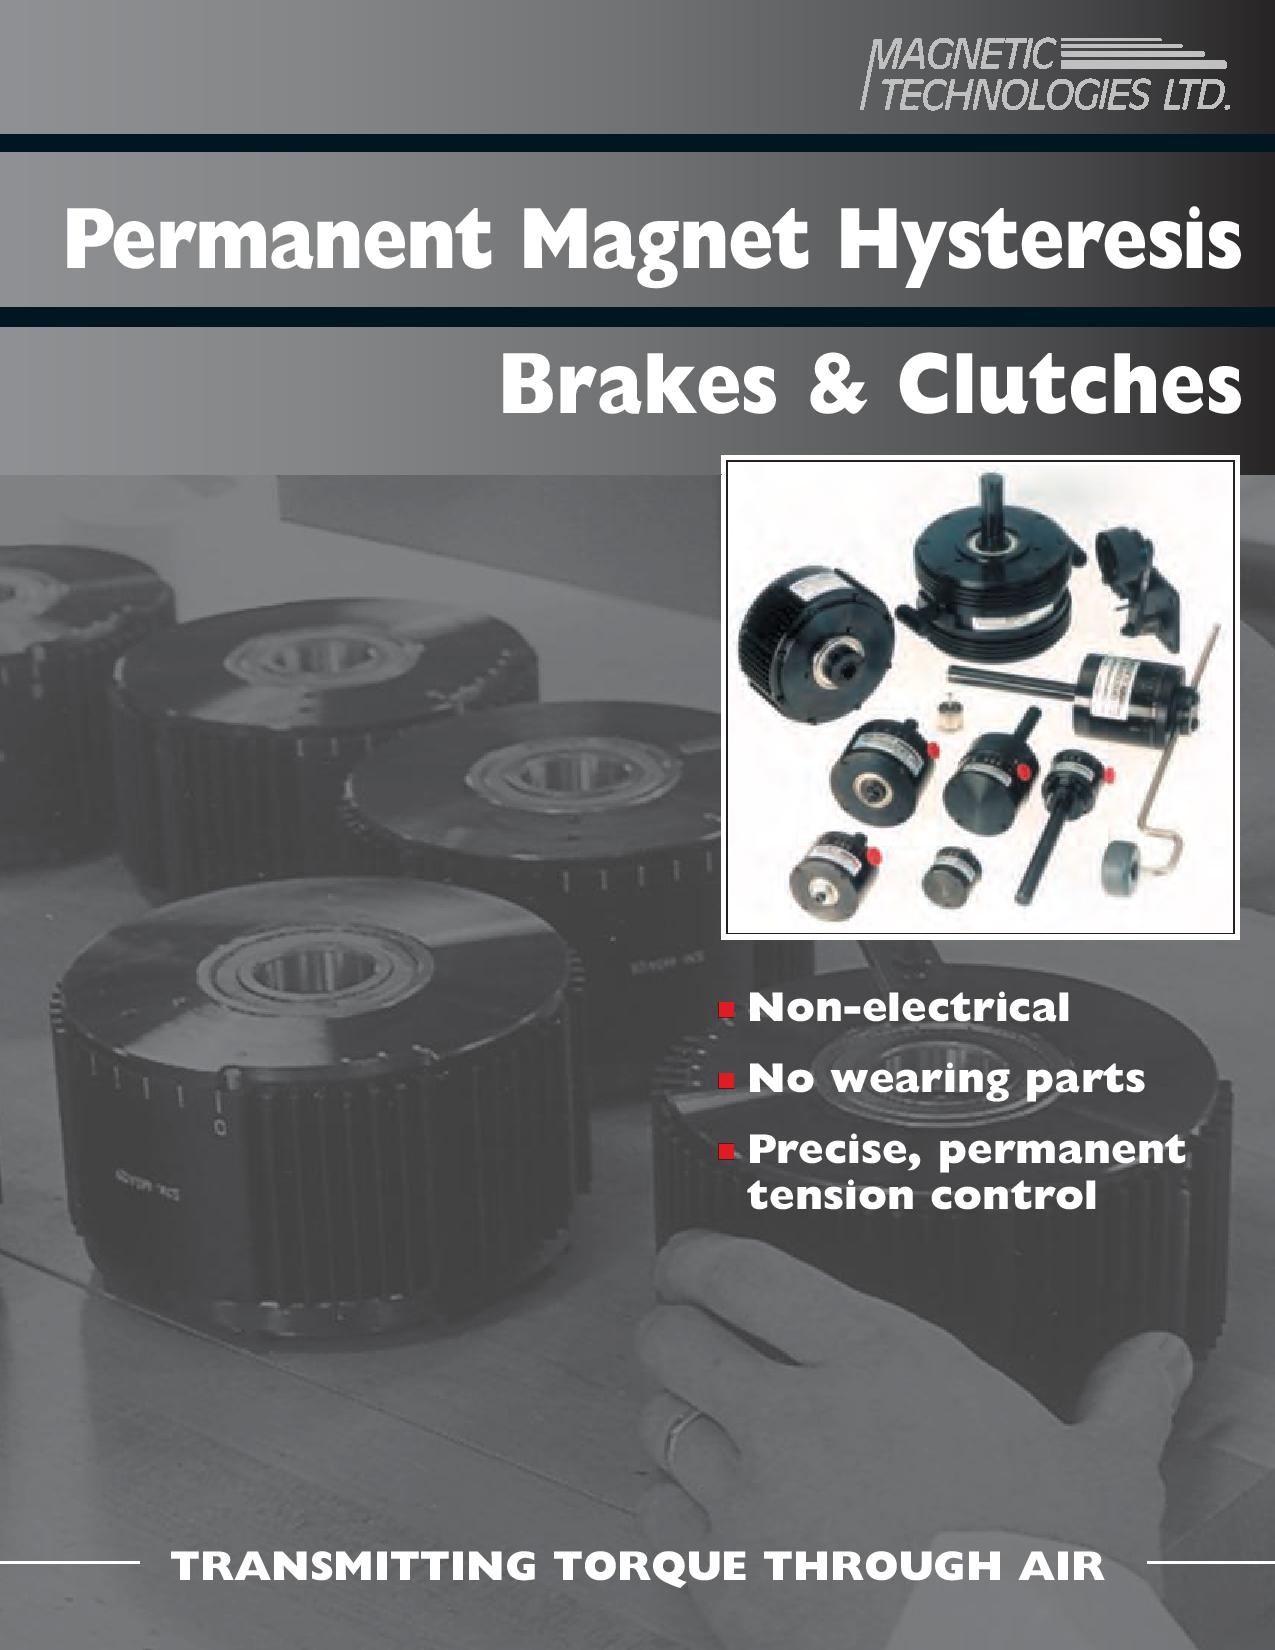 Permanent Magnet Hysteresis Brakes and Clucthes for the web-page-001